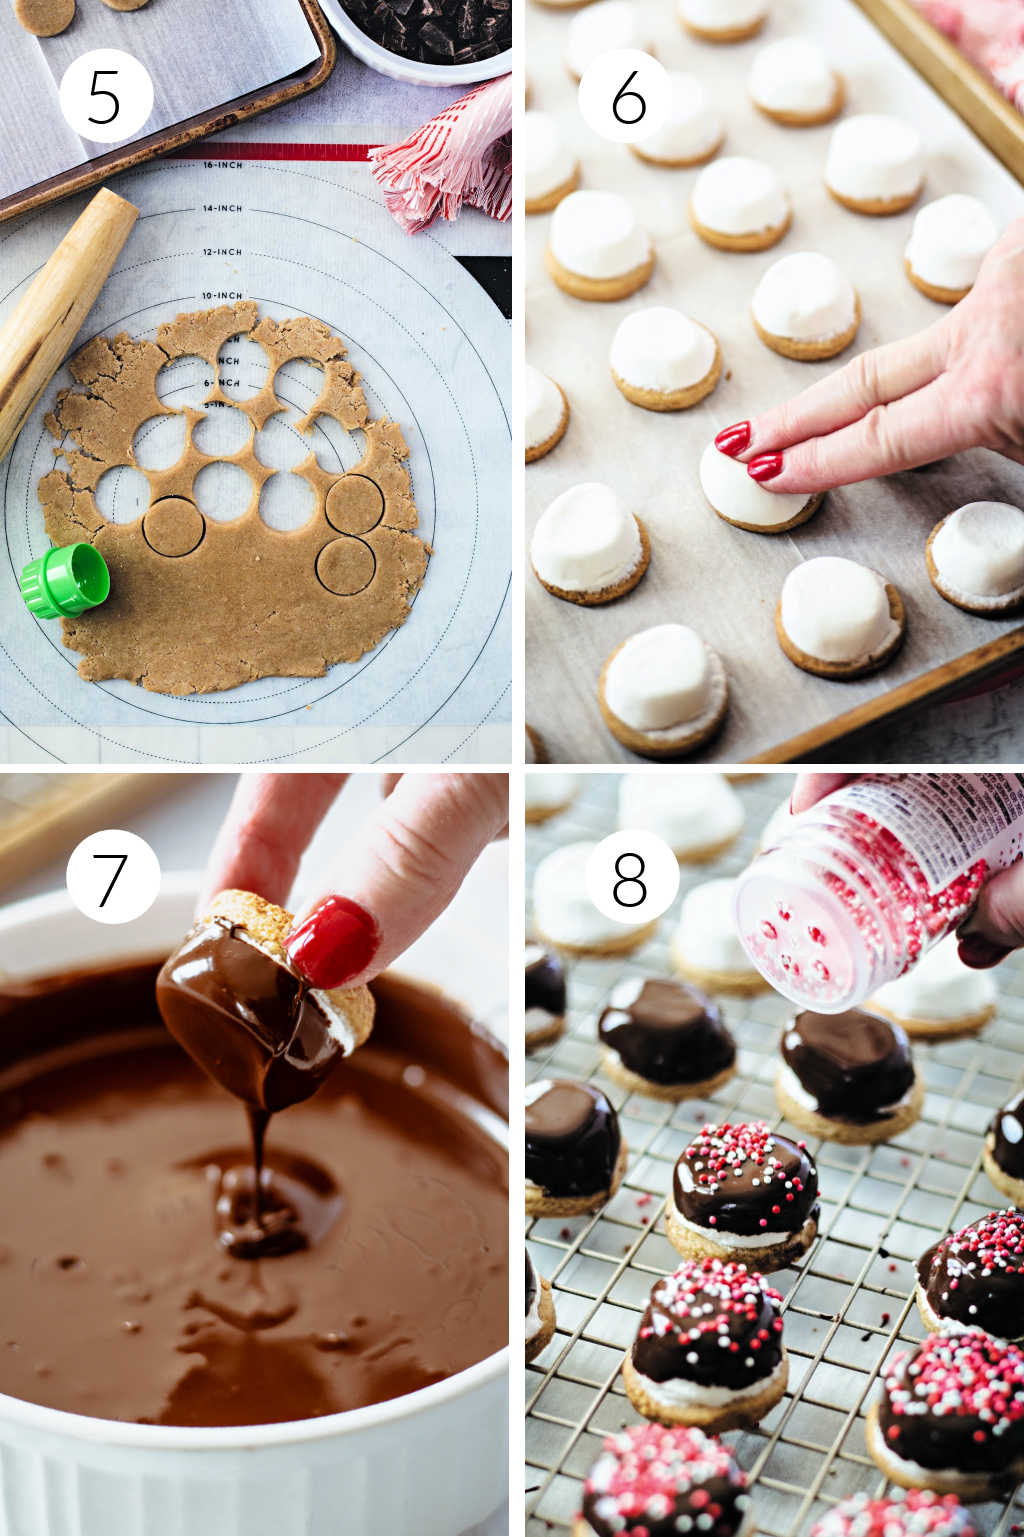 chocolate marshmallow cookie baking and decorating process steps